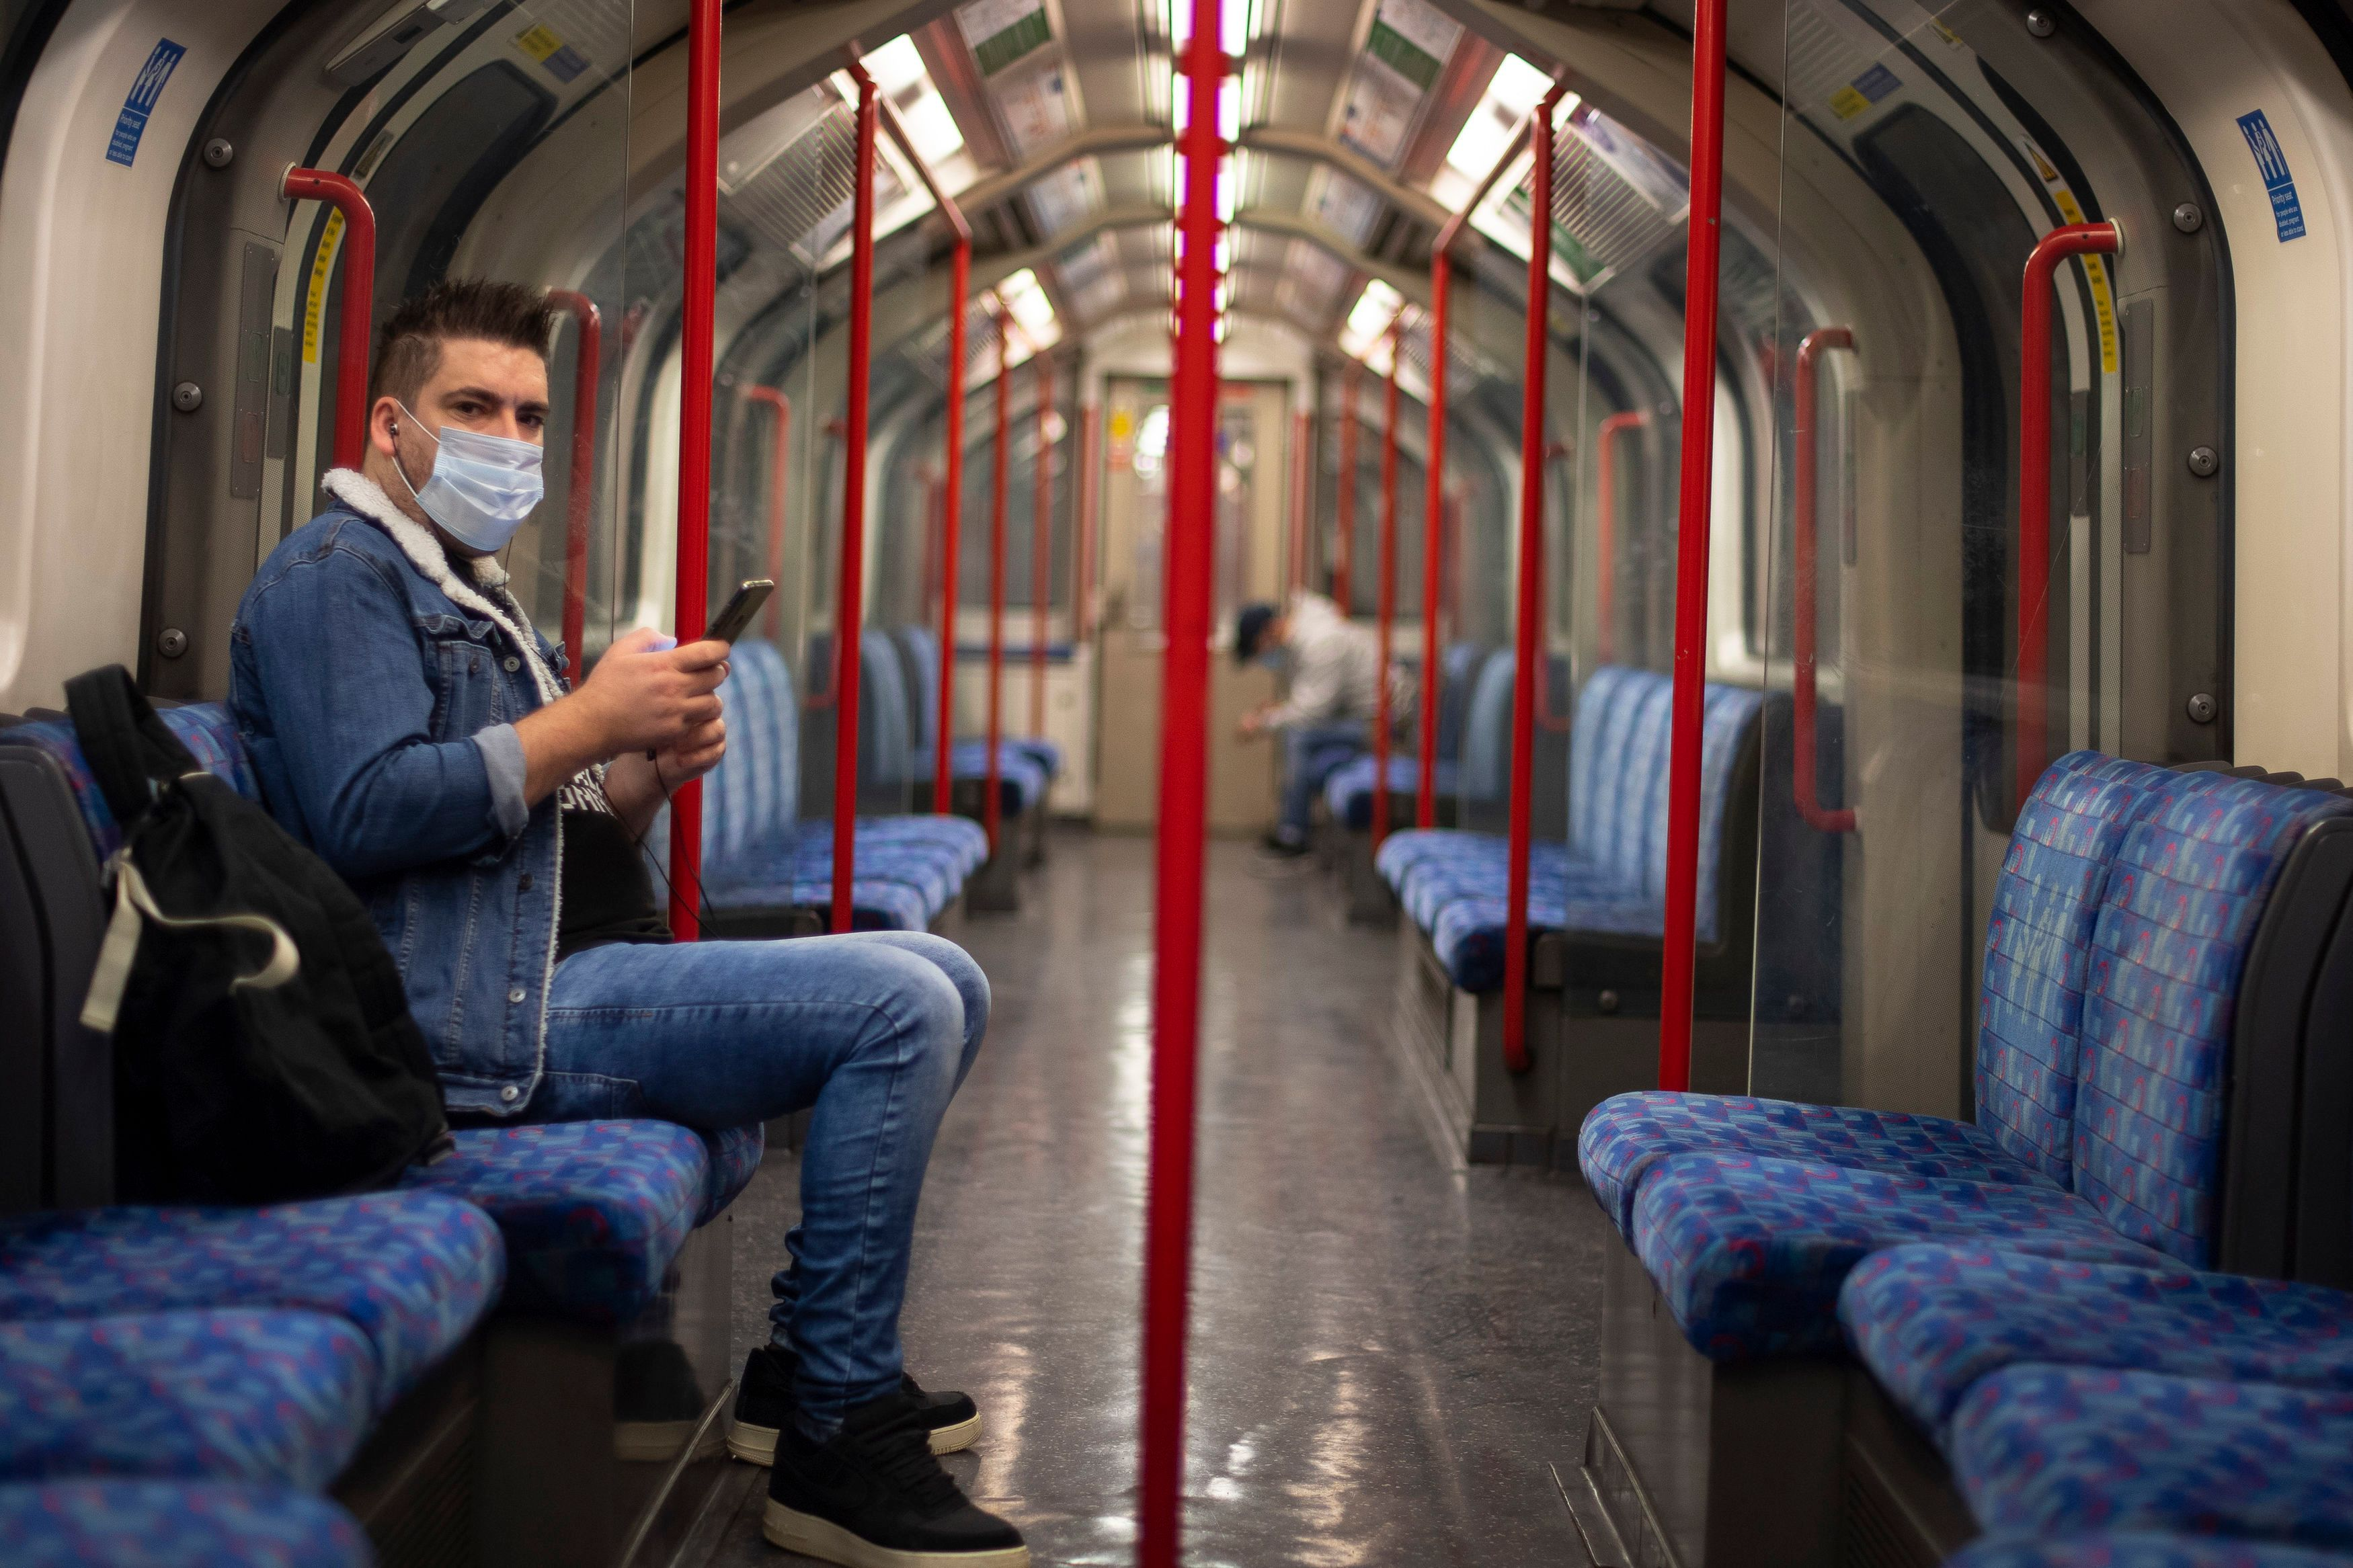 Masks must be worn on public transport in England